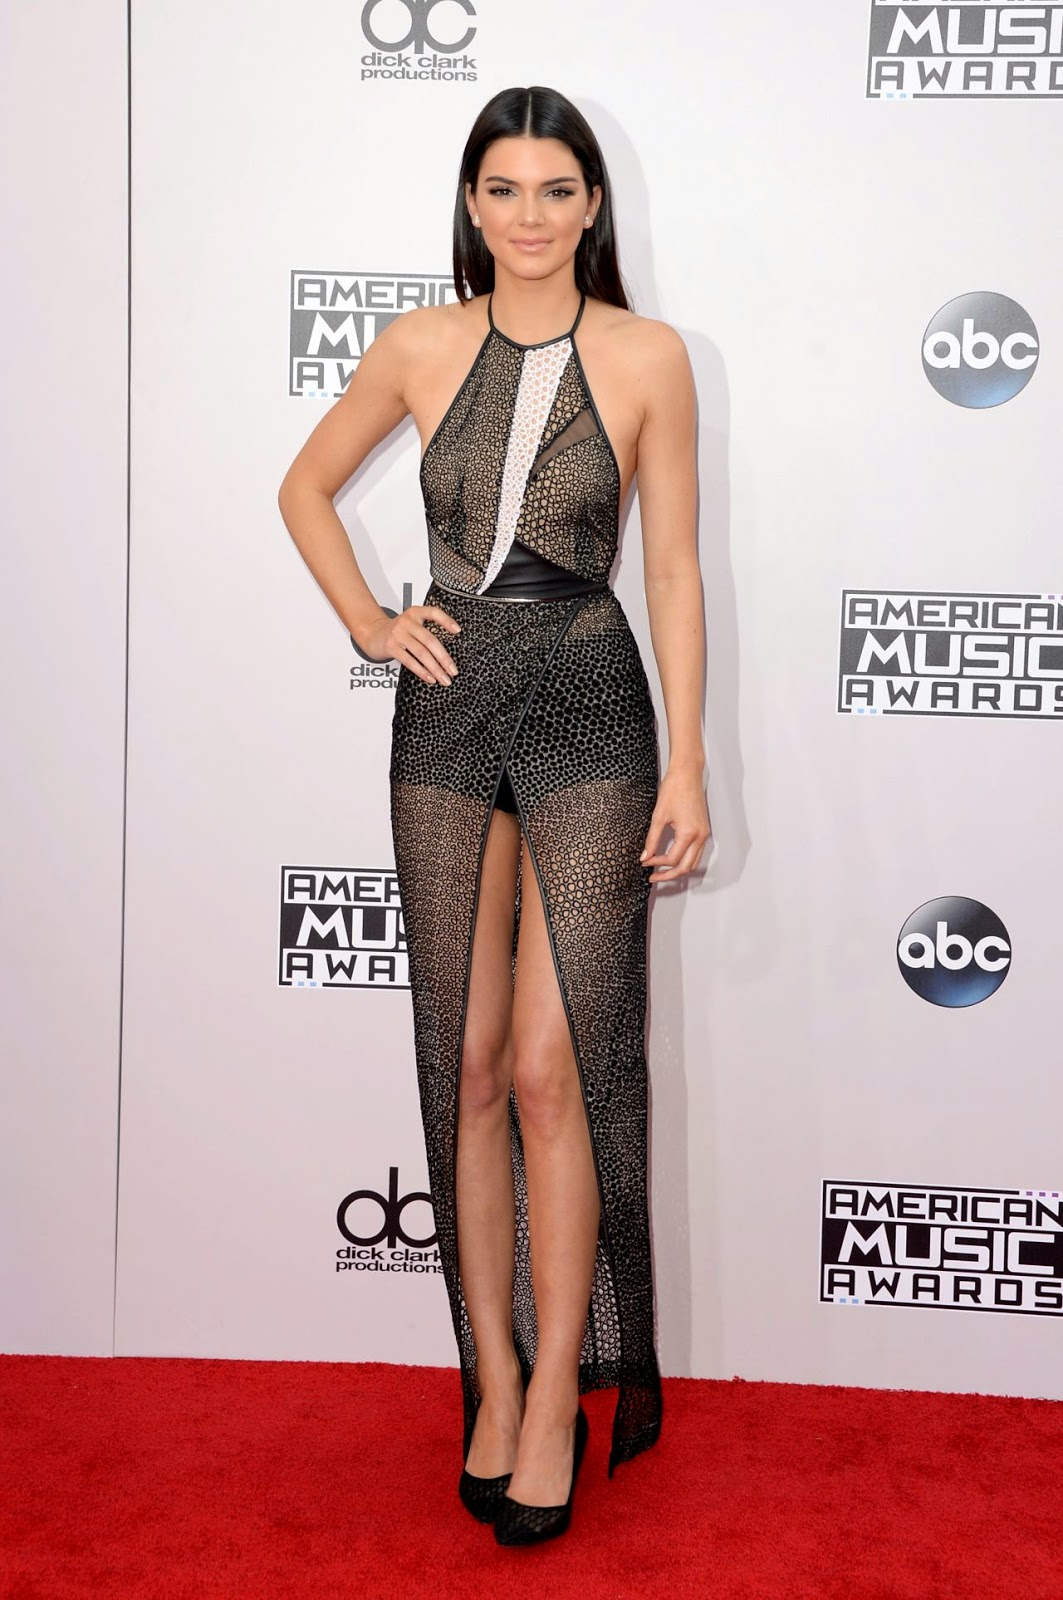 Kendall Jenner is chic in a sheer halter gown at the 2014 American Music Awards